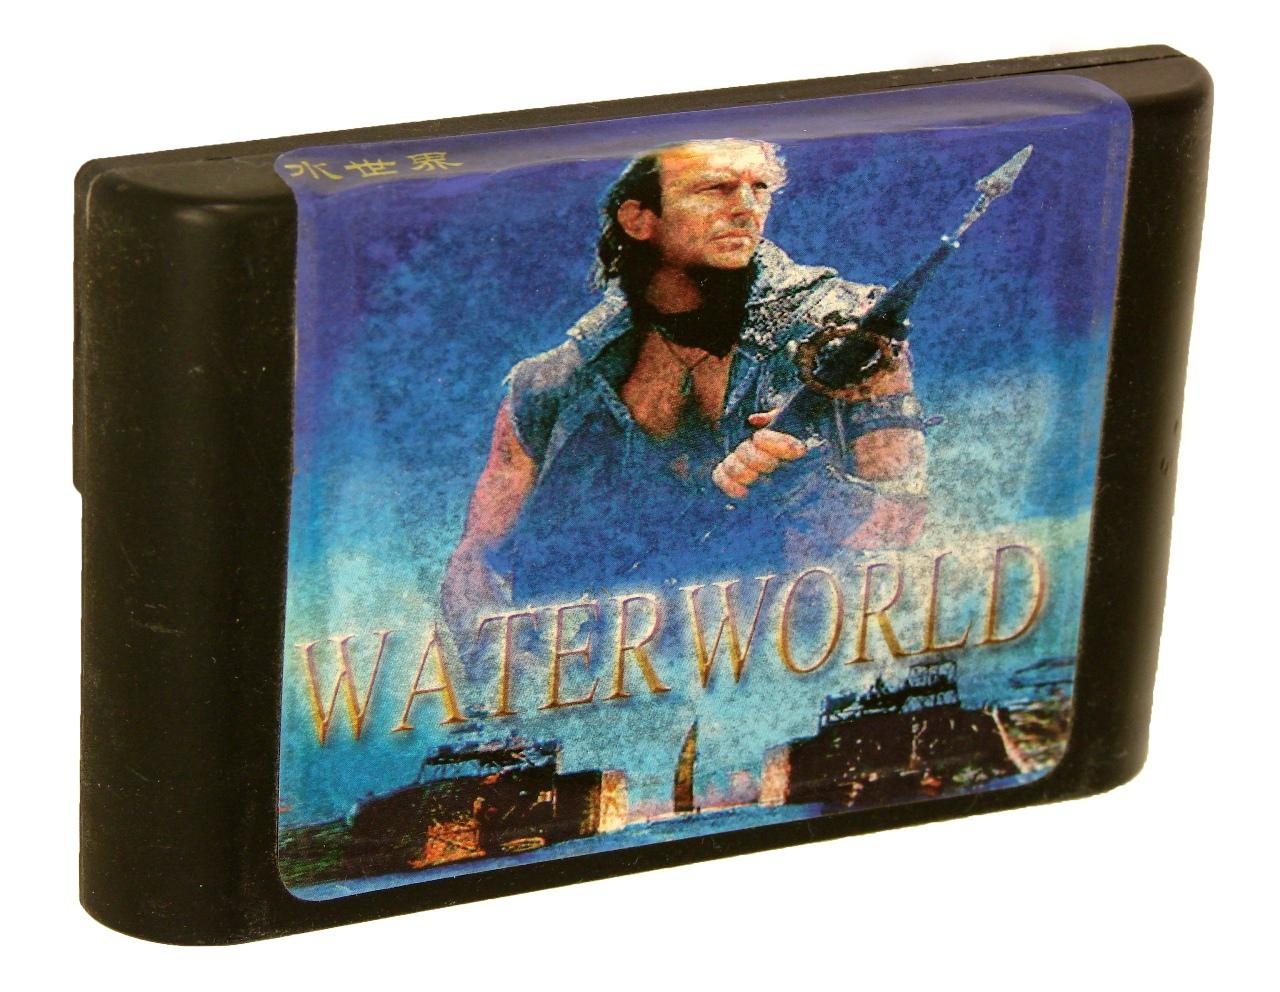 Water World (Sega)